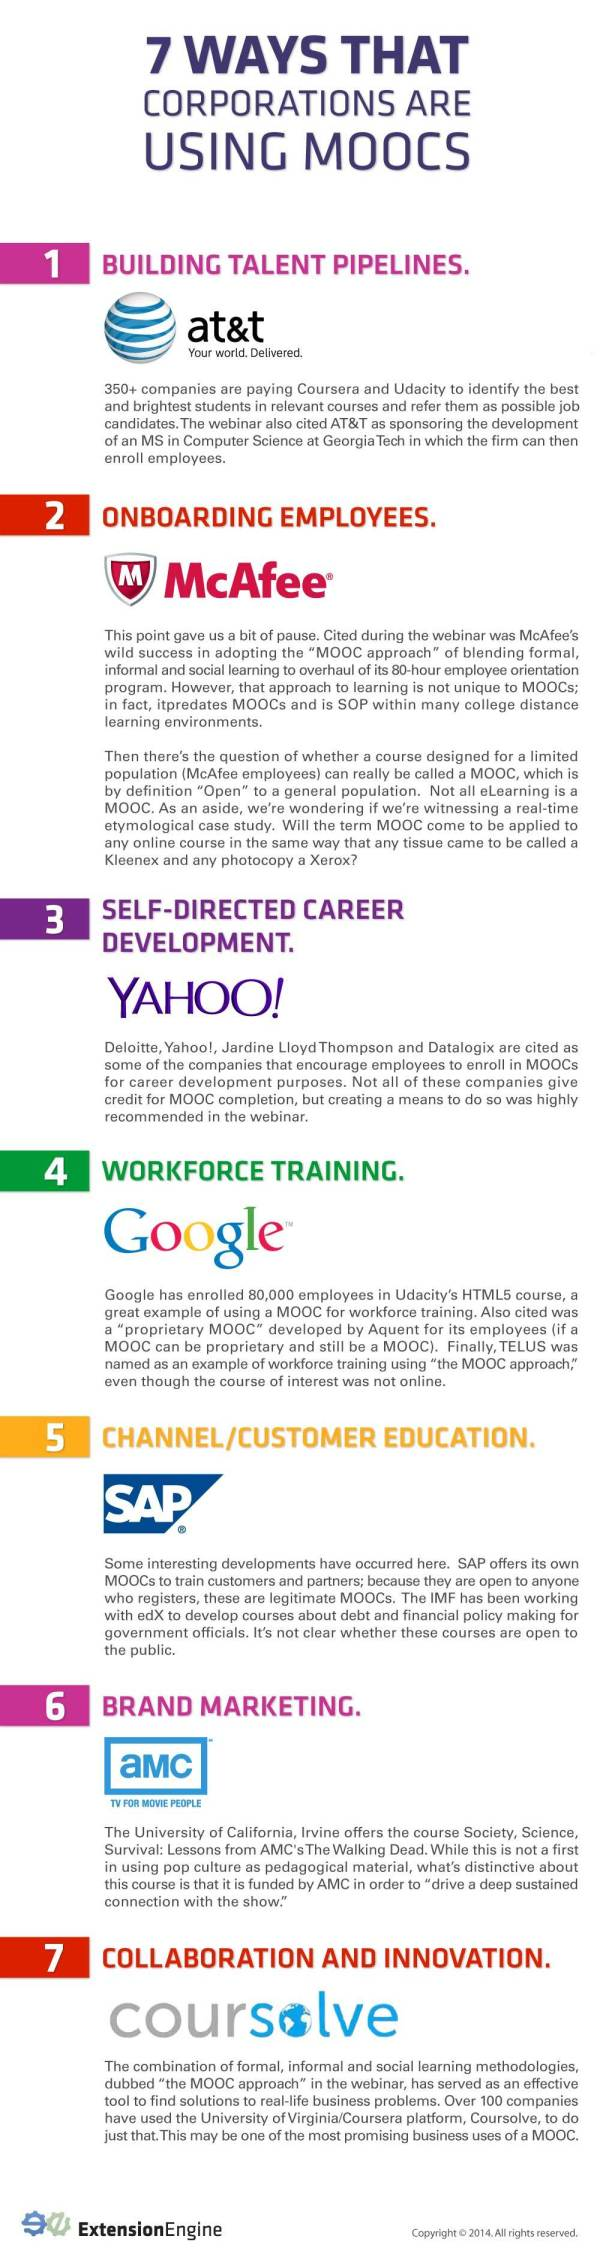 Corporations Moocs Infographic - -learning